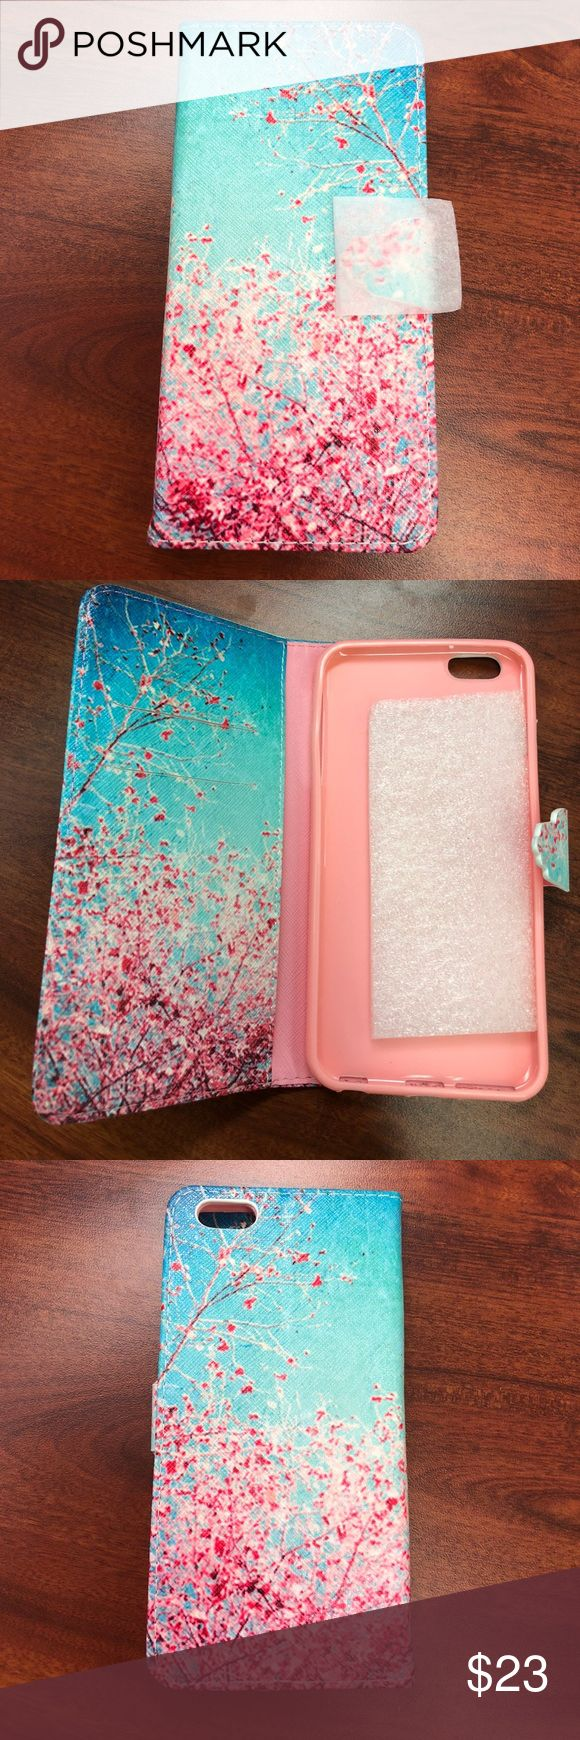 iPhone 6s/6 Plus Wallet Case w/ Screen Protector Light Blue color background with Cherry Blossom design. iPhone 6s/6 Plus Wallet Phone Case w/ screen protector. Brand New! I had the iPhone 6, not the plus so it did not fit. Super cute, just get it!!🌸🌺🌼 2 card slots plus a section for money or what not. Plus a package of Spigen iPhone 6s Plus Screen Protector. It's brand new, I believe there are multiple screen protectors inside but unsure as it doesn't state on the package. So essentially…